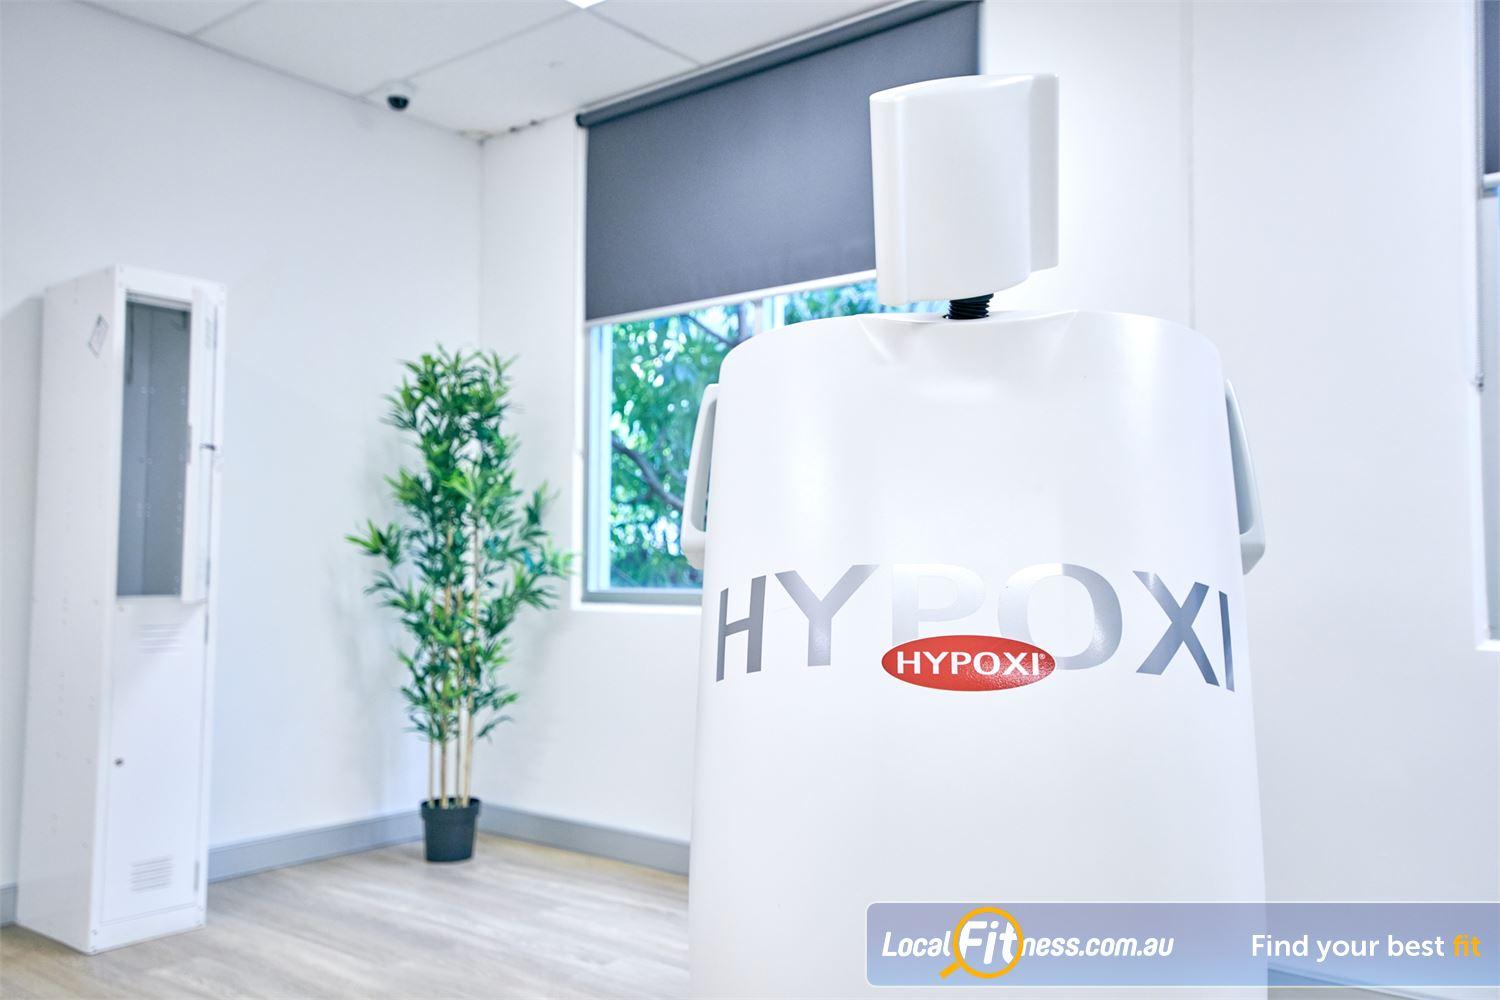 HYPOXI Weight Loss Cheltenham Our advanced HYPOXI machines will monitor your heart rate, skin temperature during treatment.